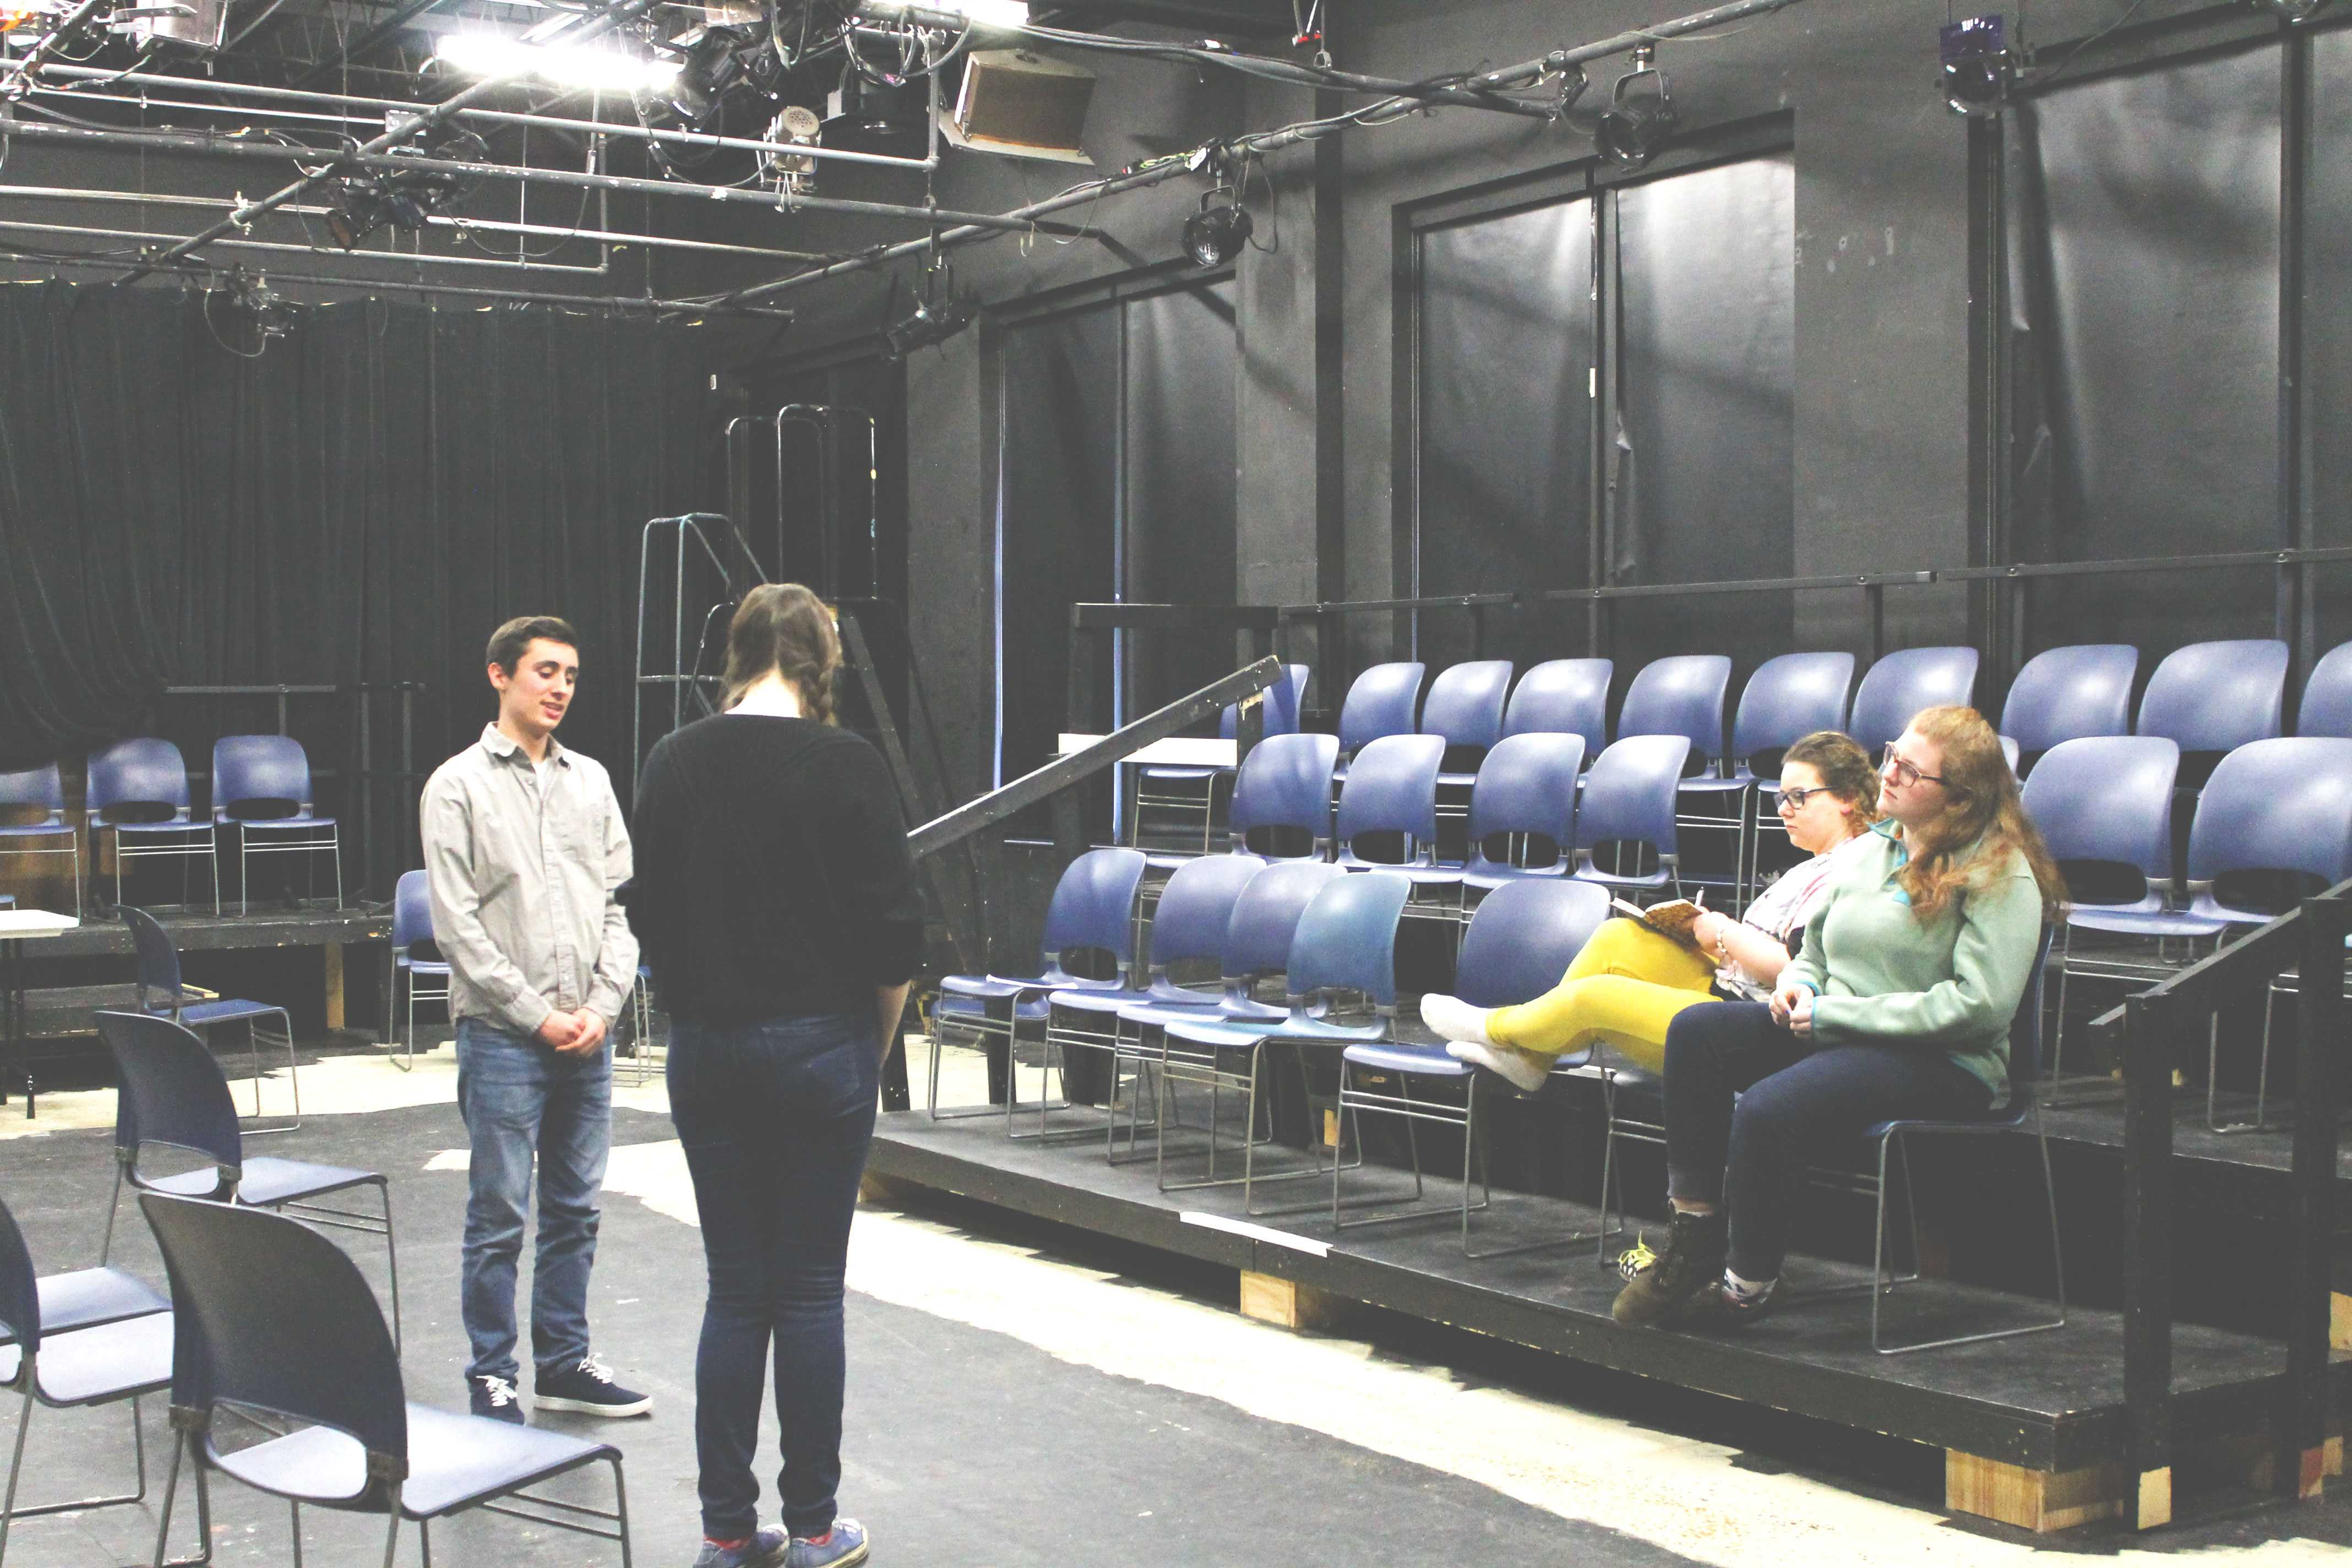 Photo by Hannah Lowenstein. Junior Trevor LaSalvia and freshman Sarah Grousta block a scene from the play. Writer and director senior Noa Goihberg said she tries to include the other actors' opinions so that the play can approach the topic of mental illness from all angles.